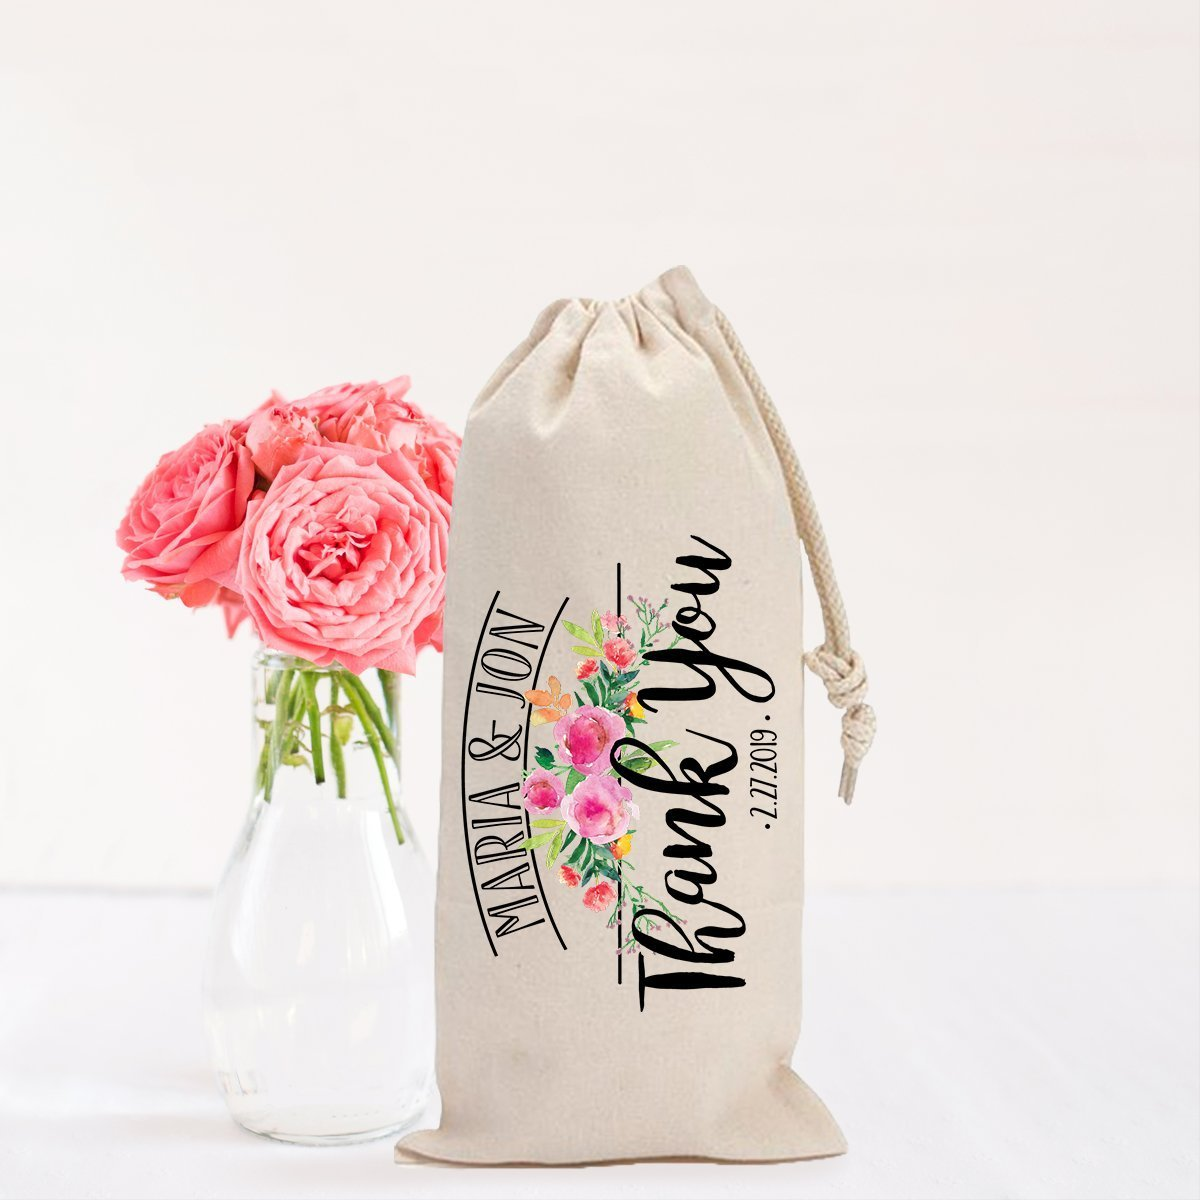 Wine Bag Wedding Favor Personalized Gift for Parents or Bridal Party Floral Wedding Gift Names /& Wedding Date